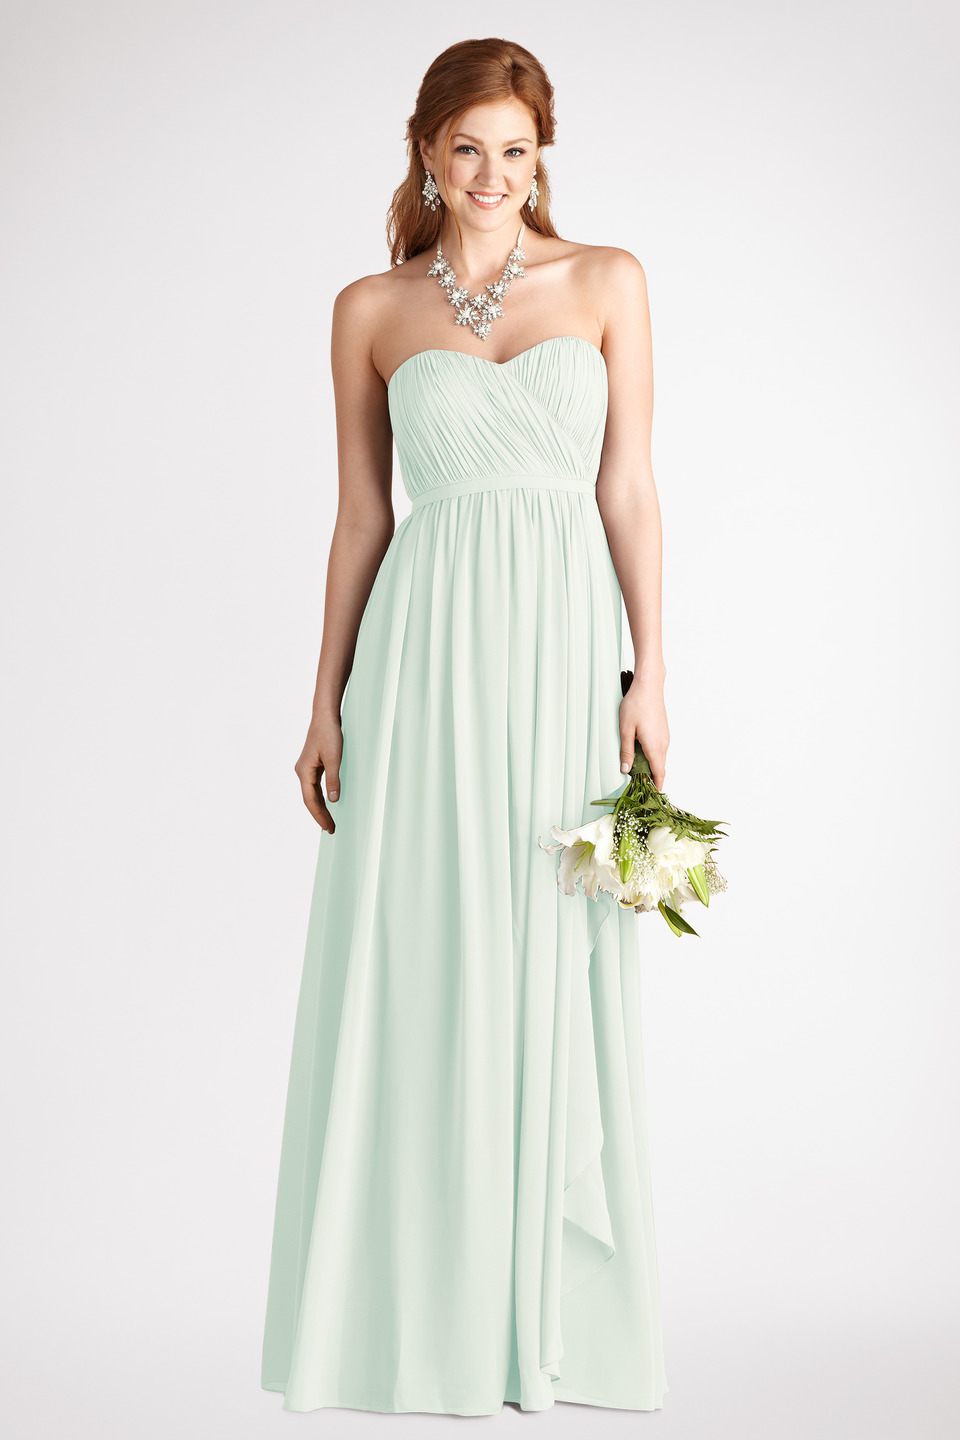 Sweetheart strapless dress in mint onewedcom for Mint dresses for wedding